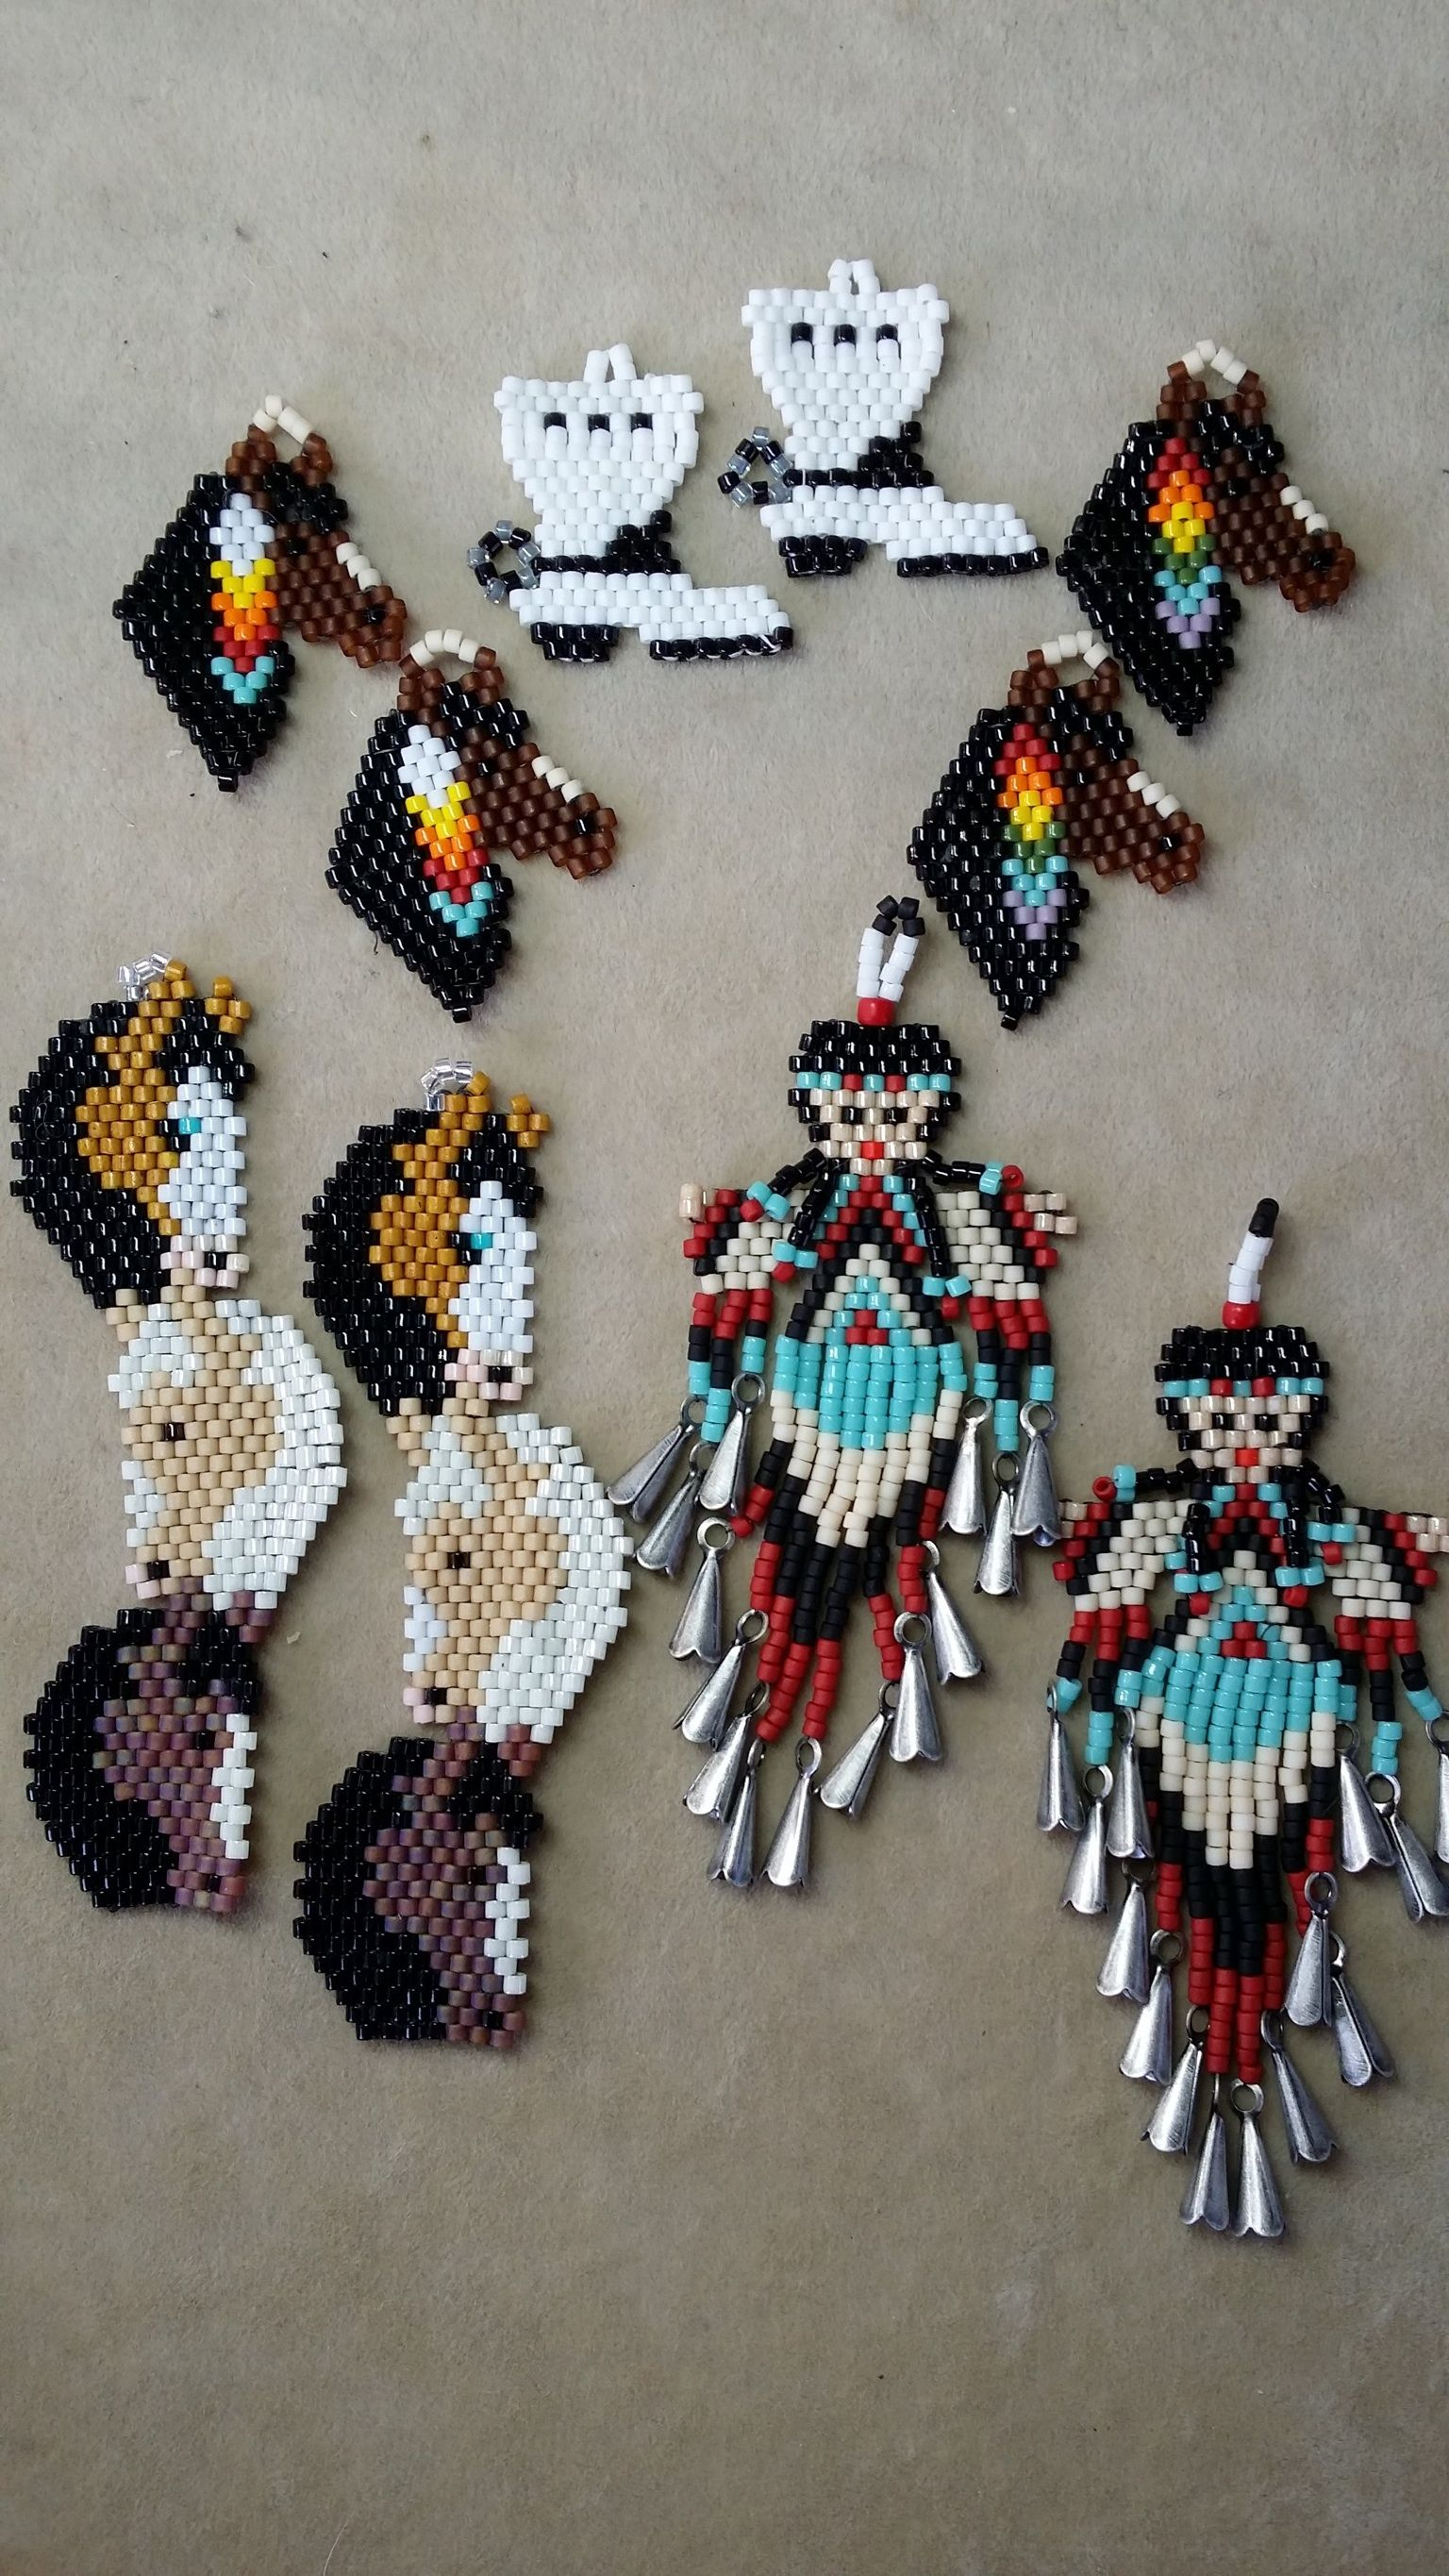 Pin by fildeloire on My Creations | Bead loom designs